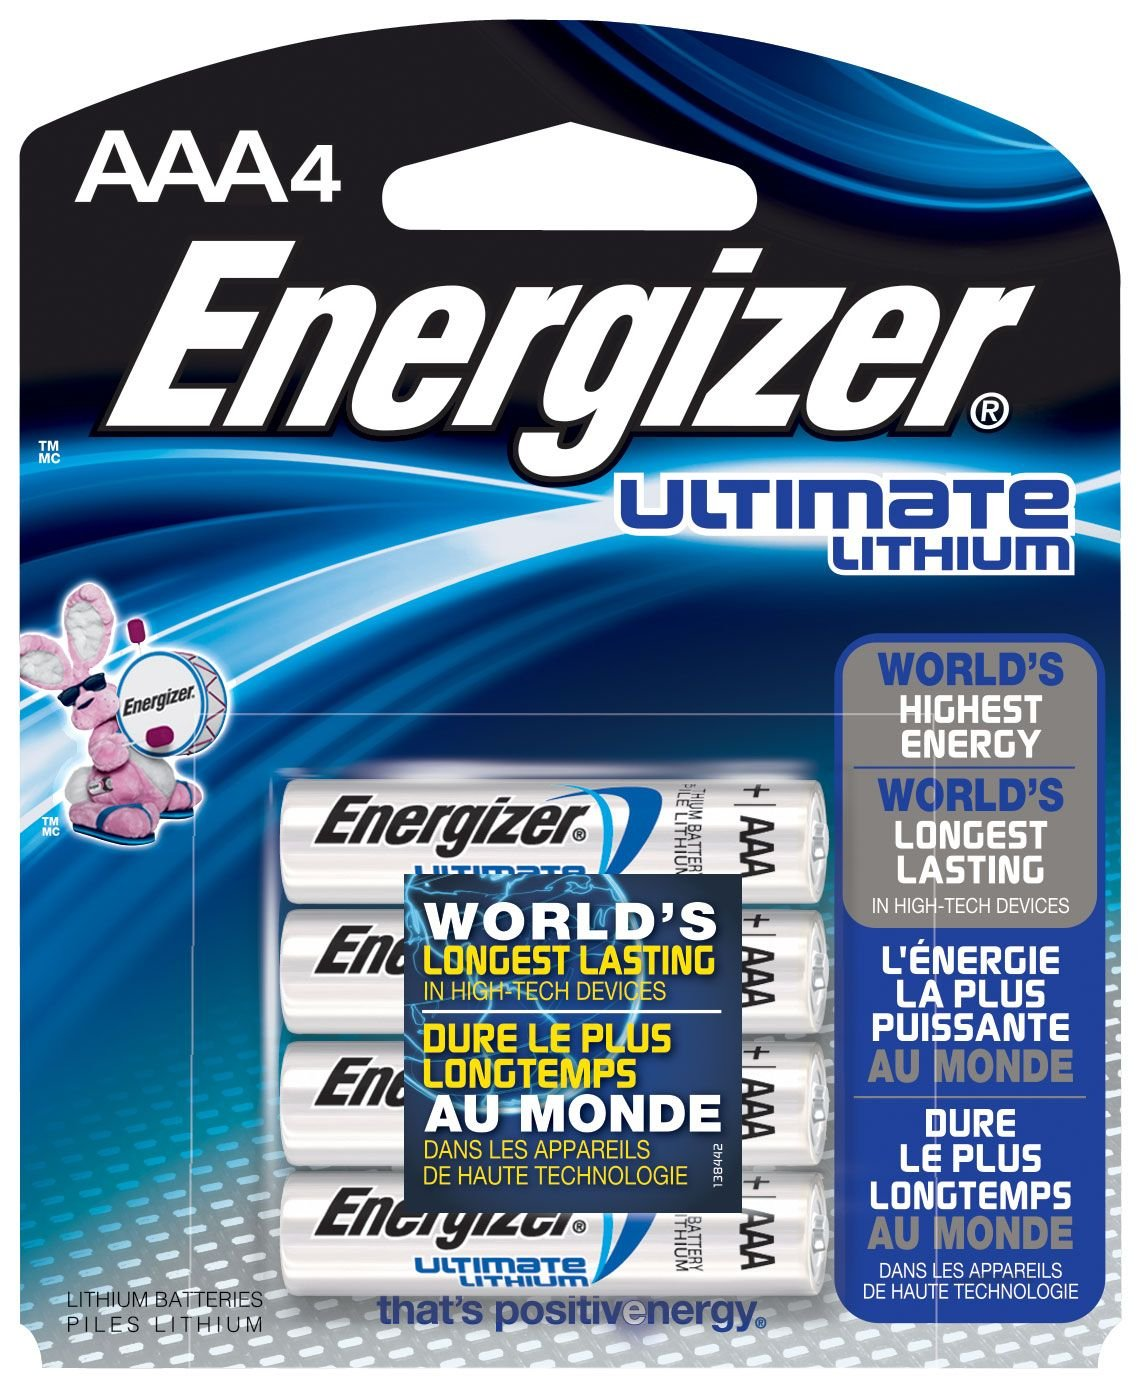 Energizer Ultimate Lithium AAA Batteries, World's Longest-Lasting AAA Battery in High-Tech Devices (4 pack) Technuity L92BP4